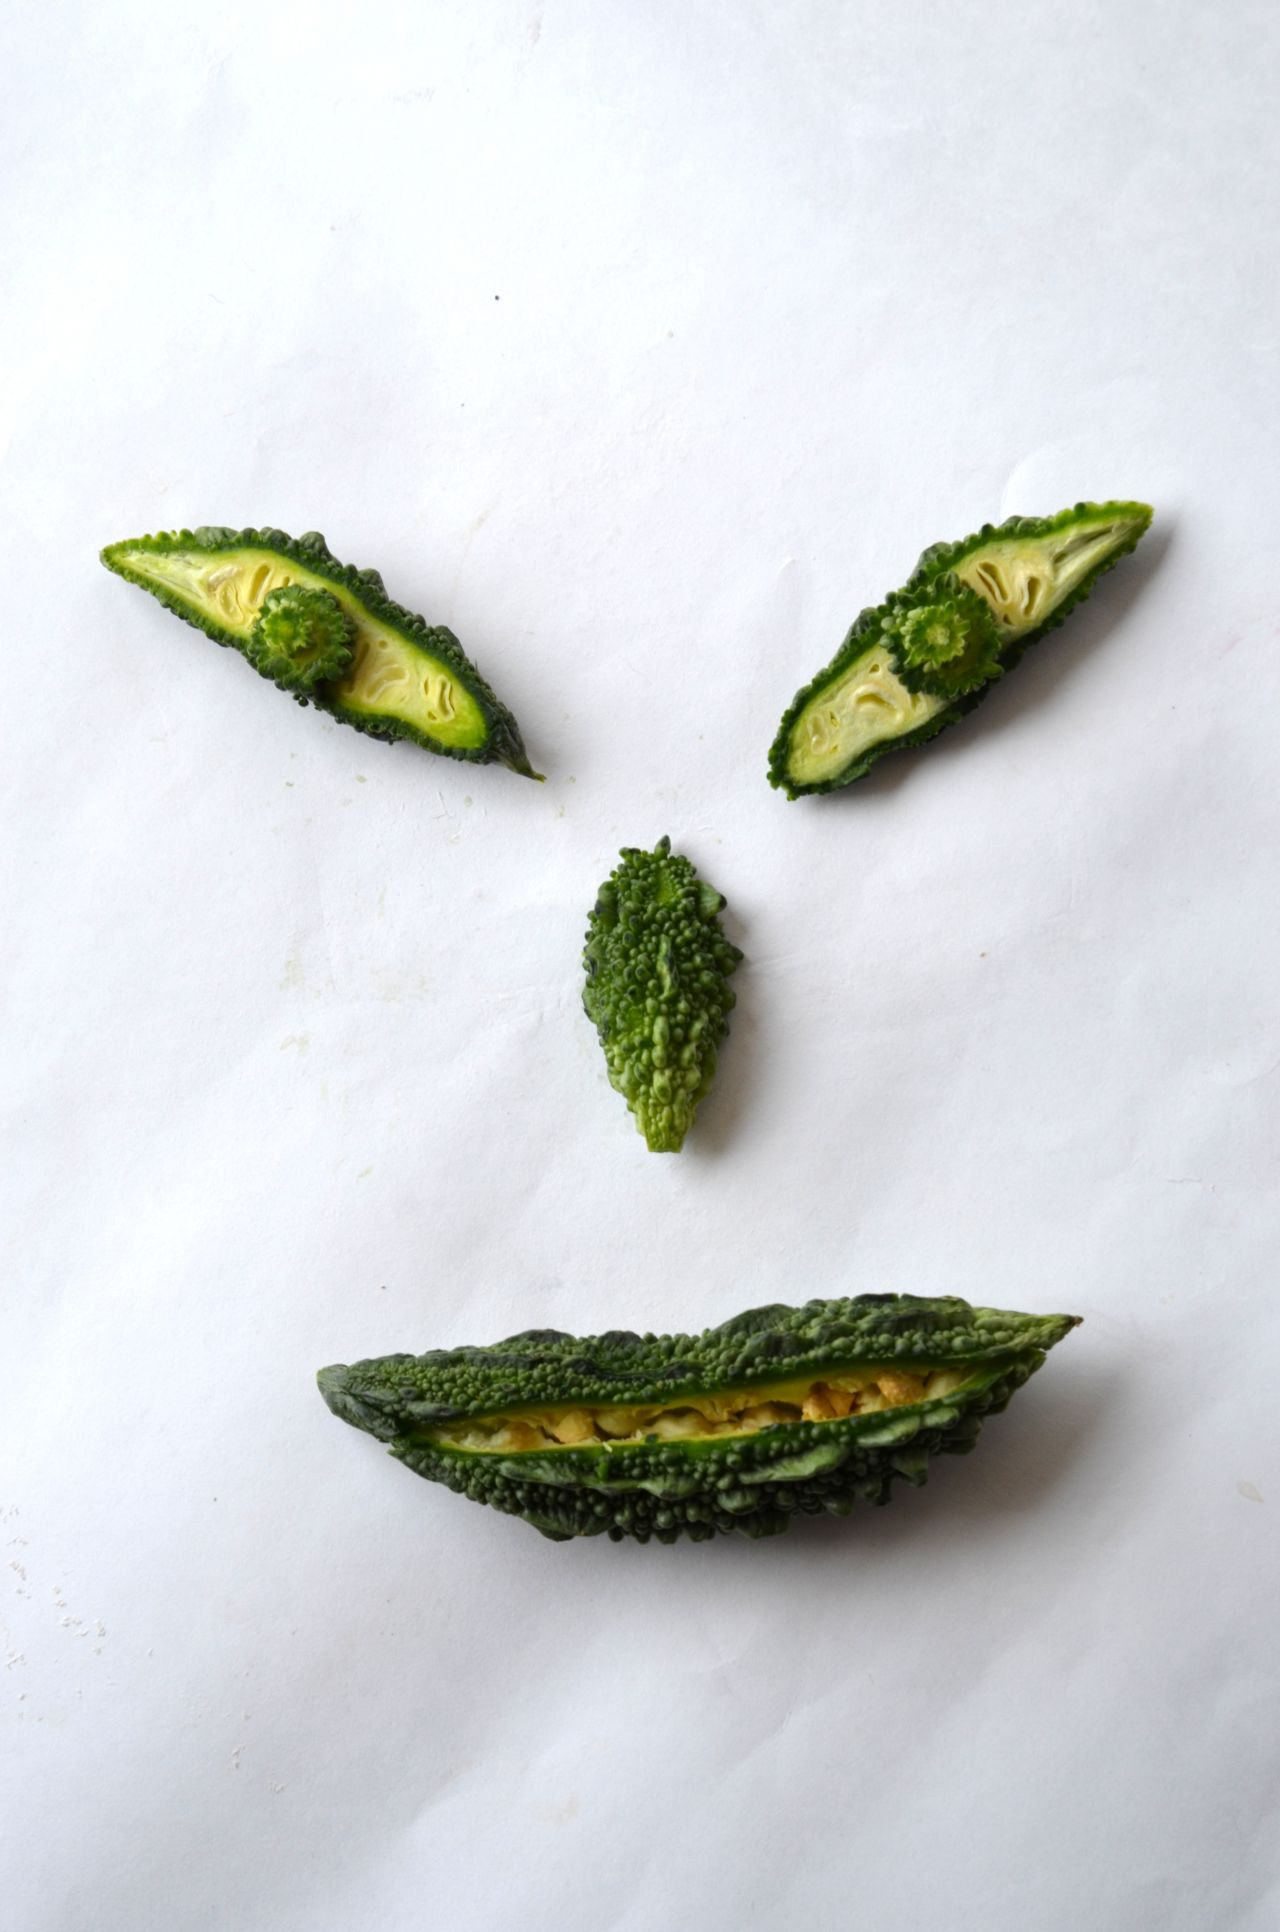 """Free photo """"Smiley Face From Vegetables"""""""